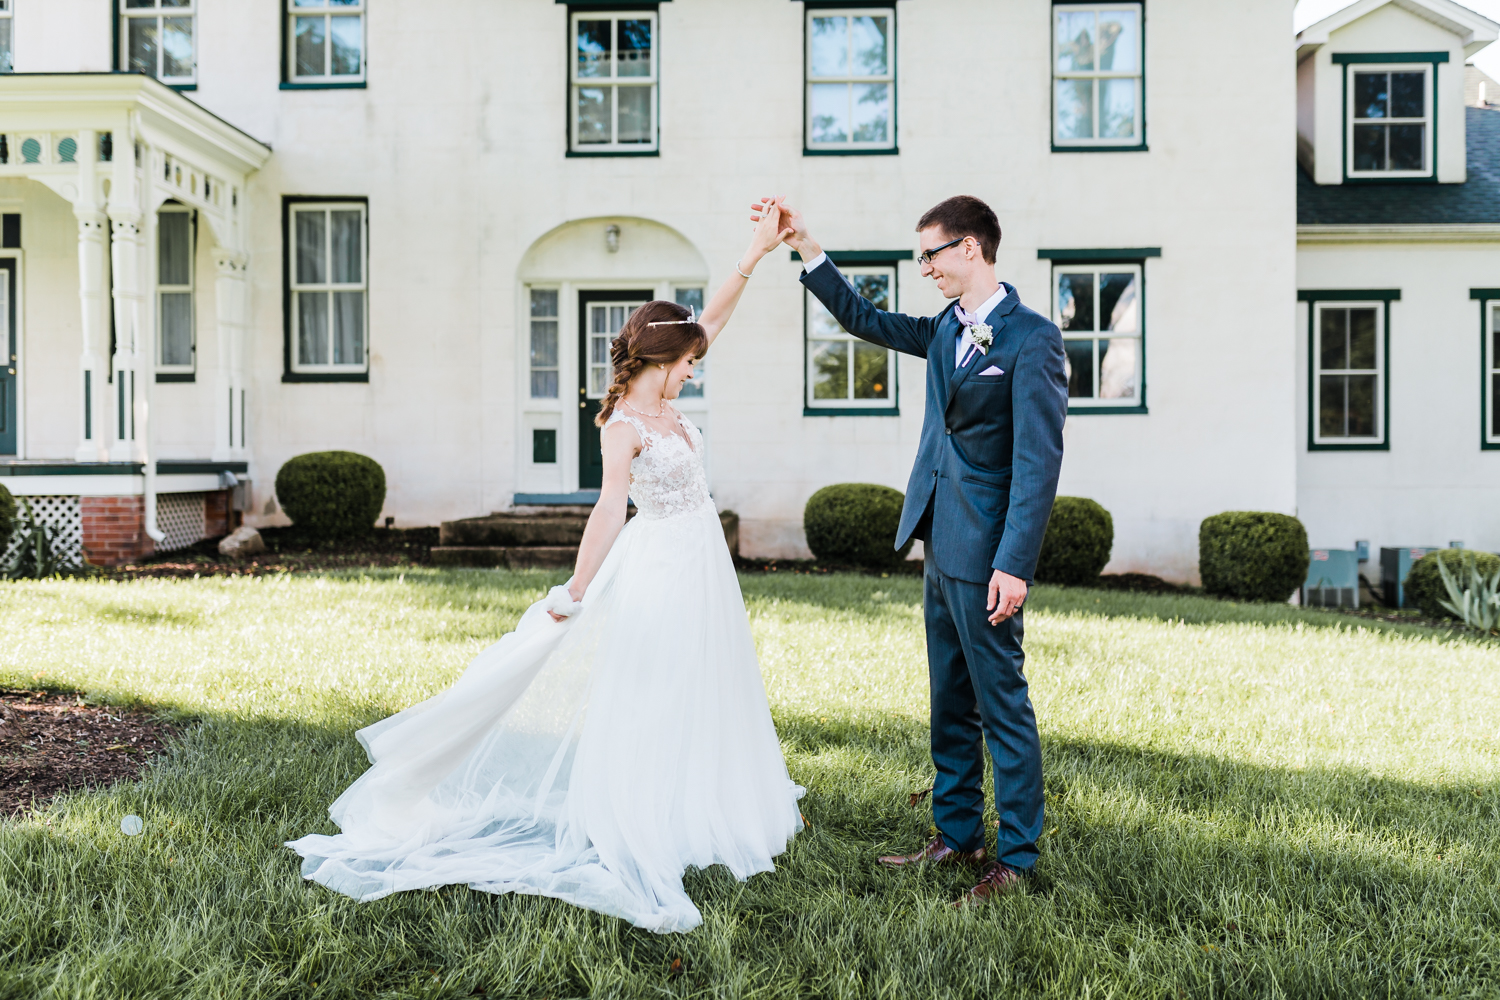 bride and groom dancing together with beautiful fairytale dress - maryland wedding venue